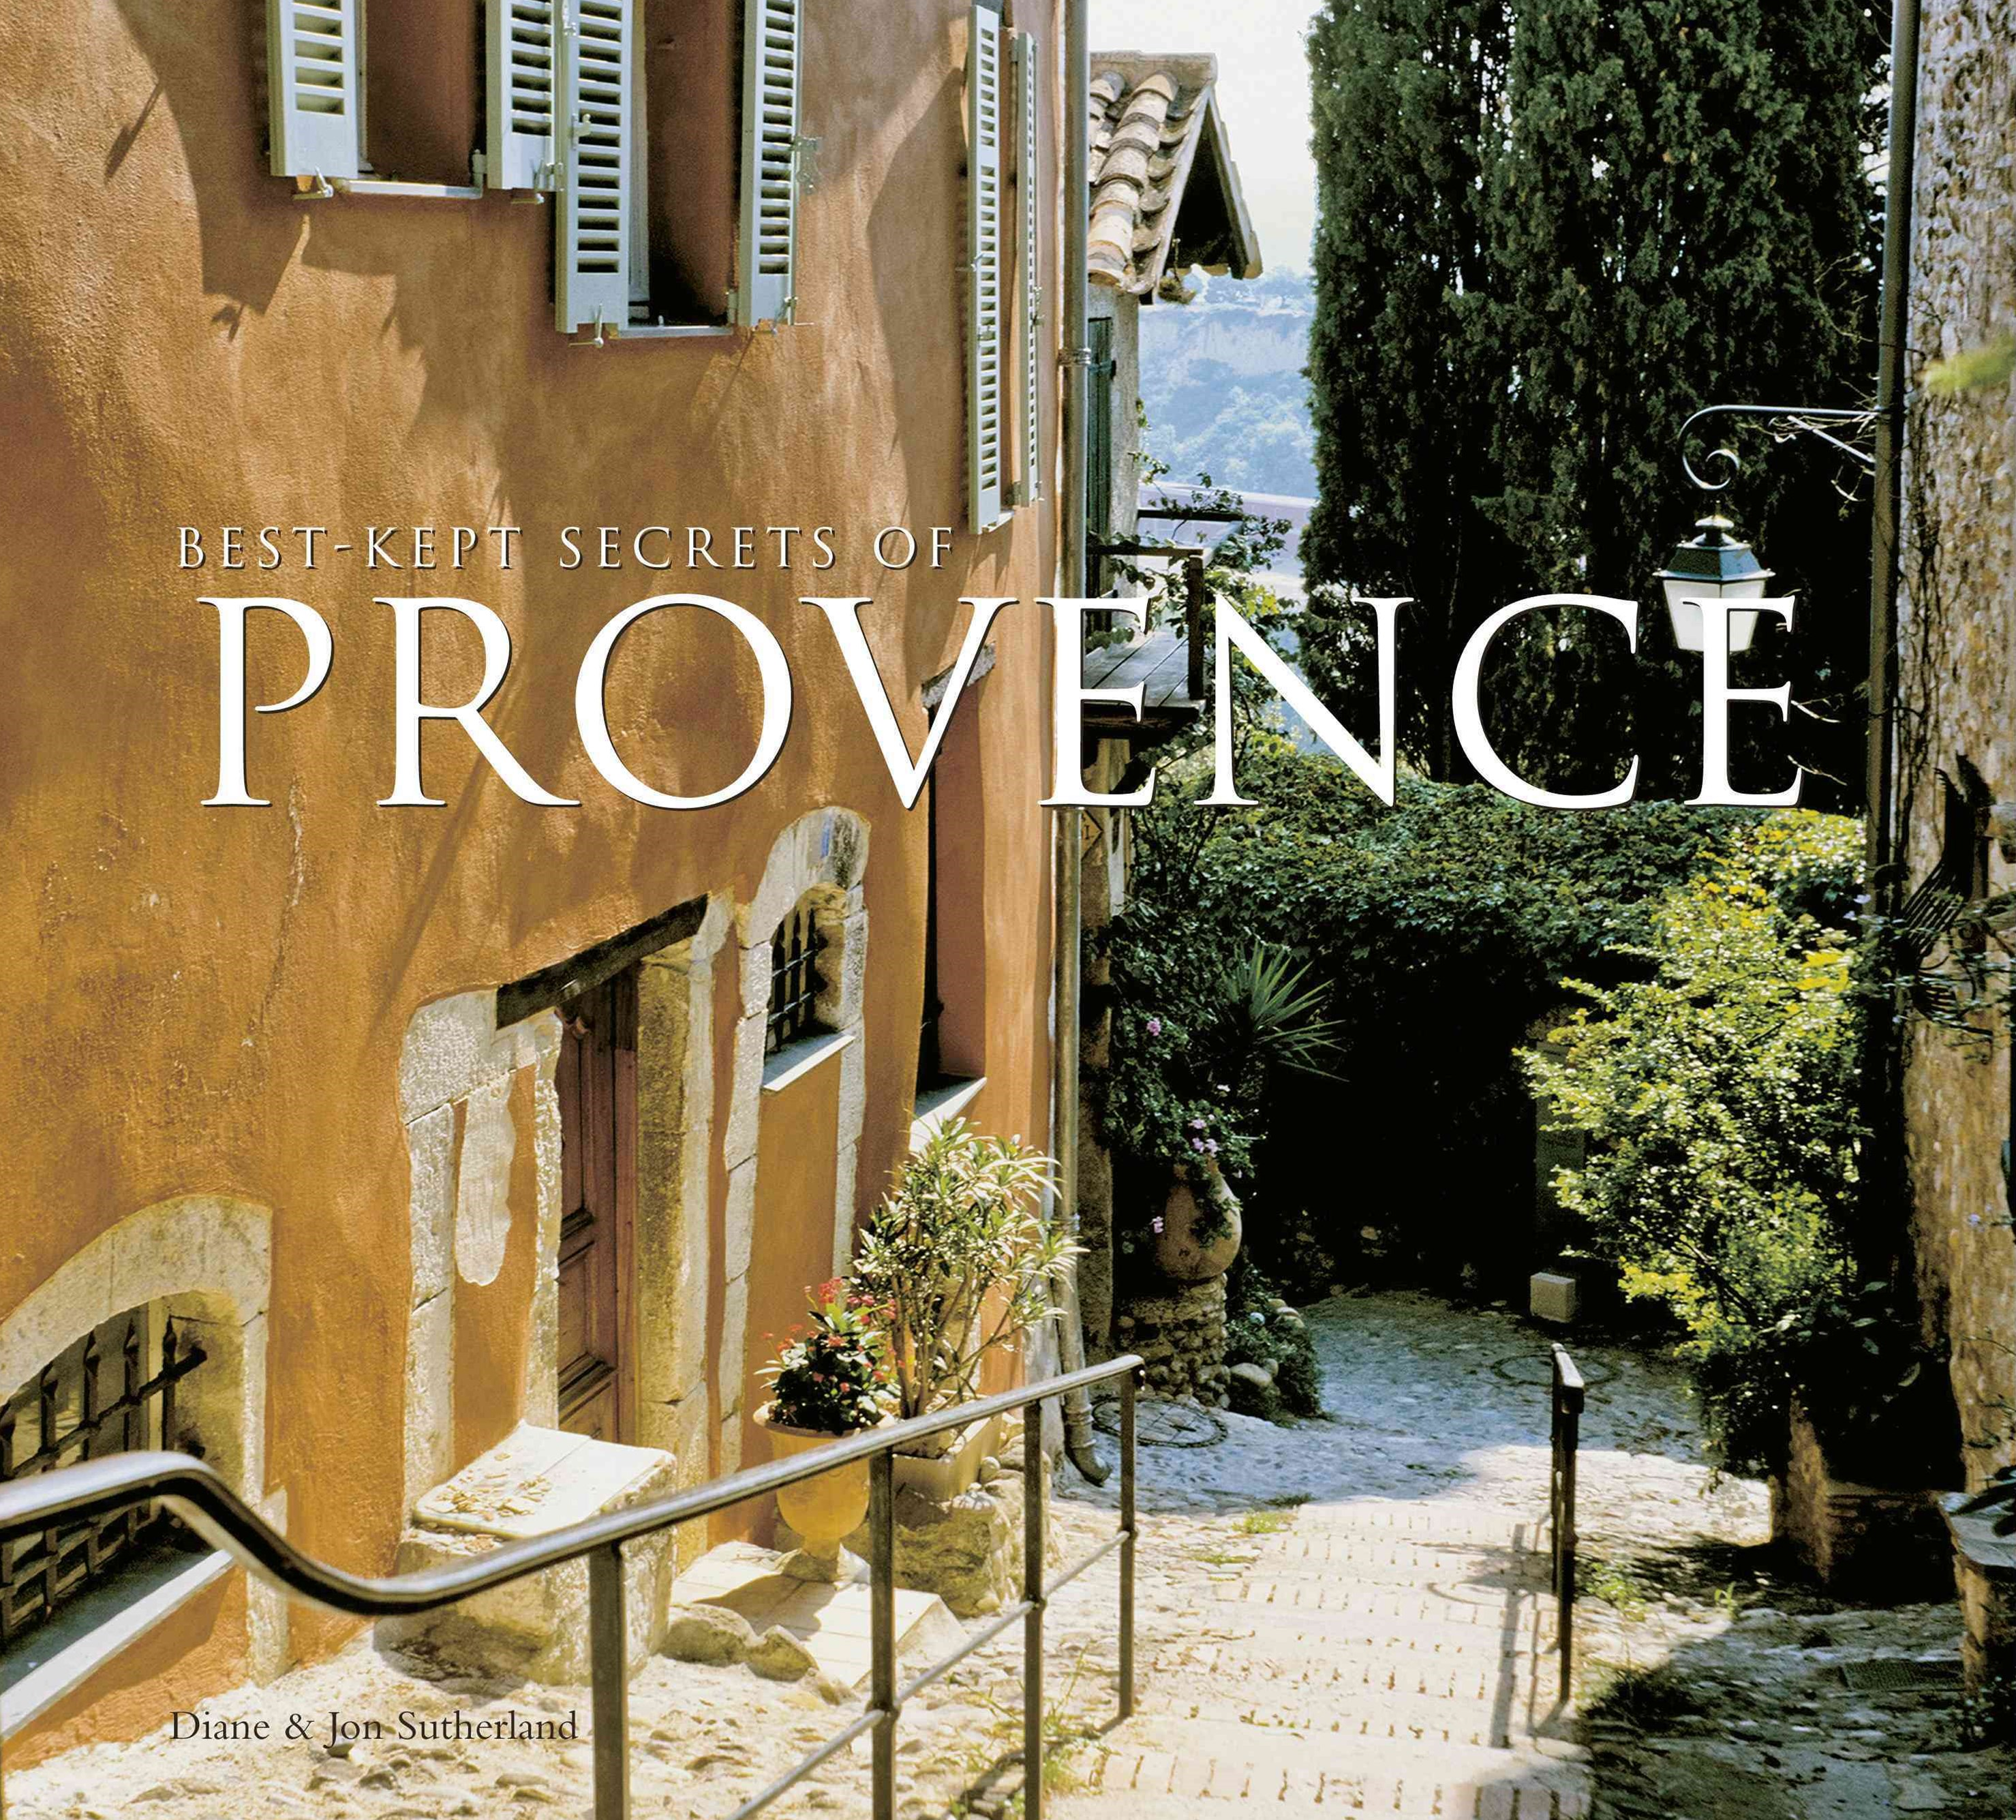 Best-Kept Secrets of Provence